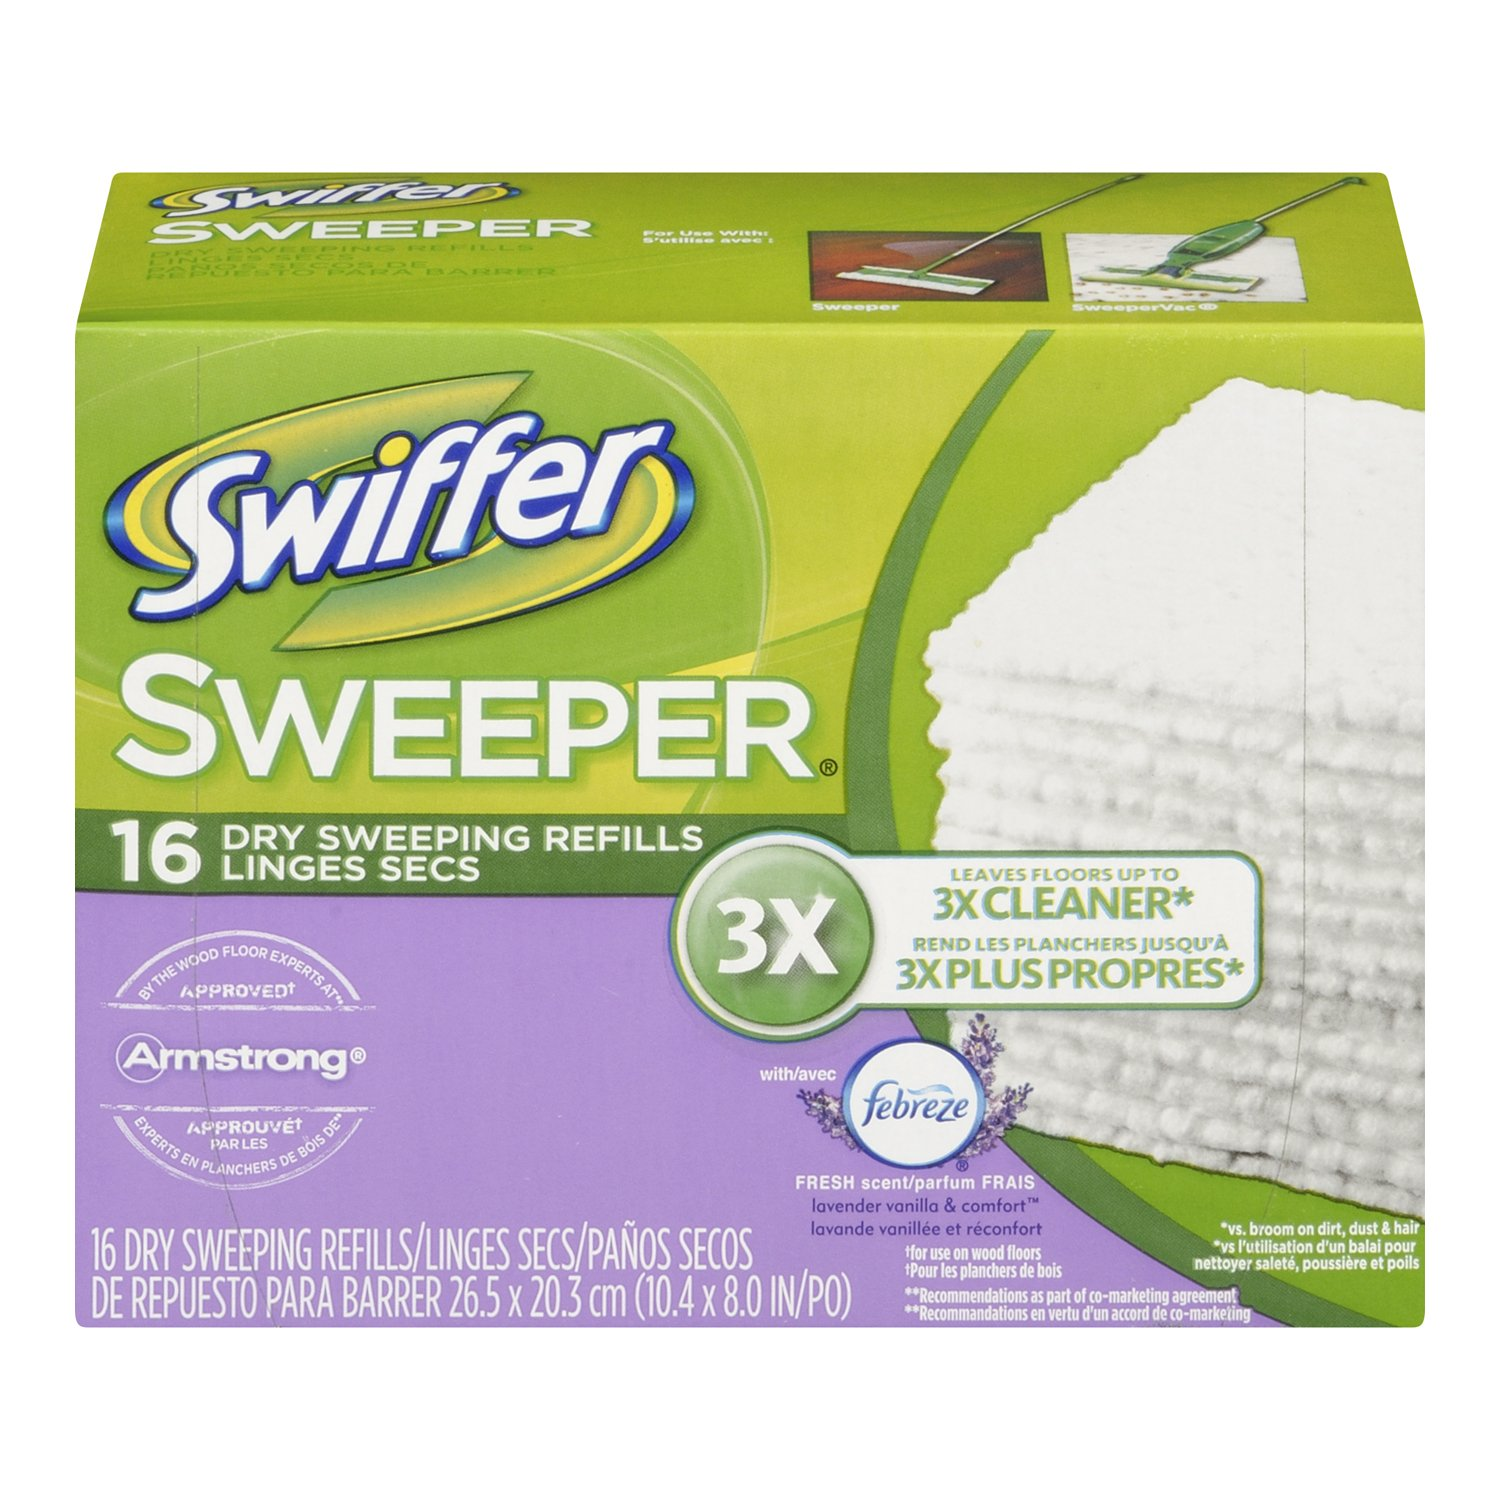 Swiffer Sweeper Dry Sweeping Cloths, Mop and Broom Floor Cleaner Refills, Febreze Lavender Vanilla and Comfort Scent, 16 Count